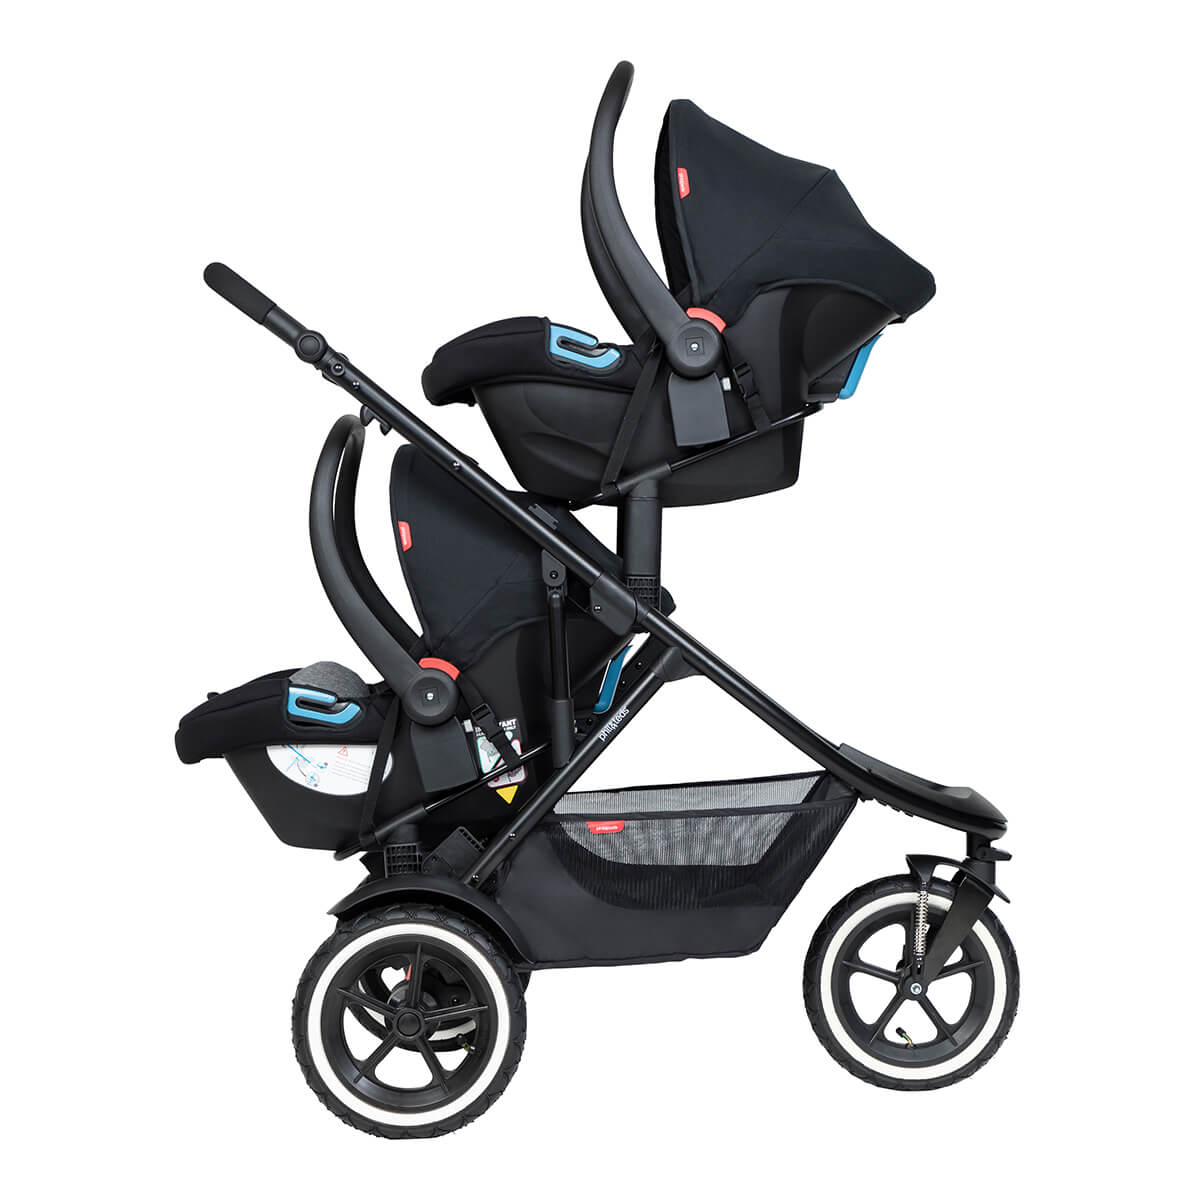 https://cdn.accentuate.io/4509867475041/19793940447402/philteds-sport-buggy-with-double-alpha-travel-system-v1626485333309.jpg?1200x1200